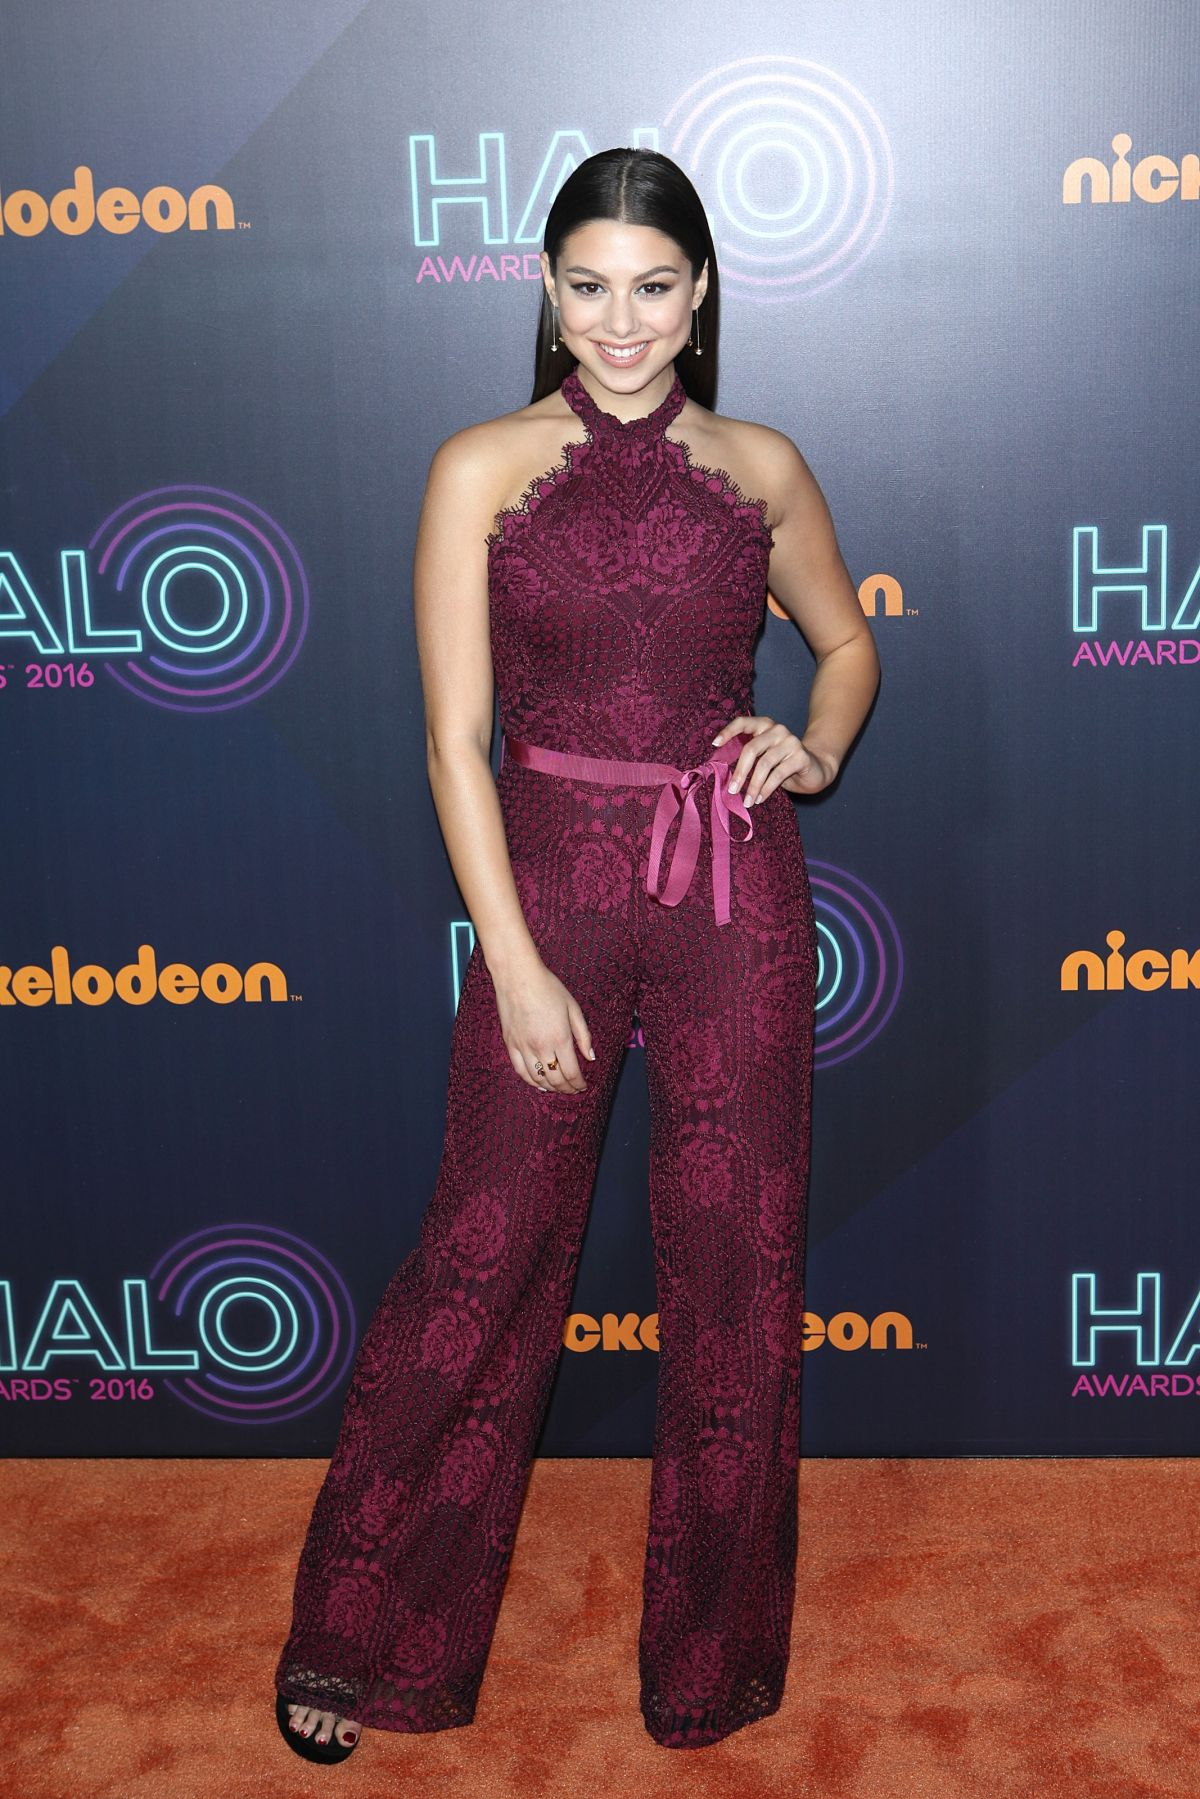 Nickelodeon 2016 Halo Awards : nickelodeon, awards, Kosarin, Nickelodeon, Awards, Celebzz